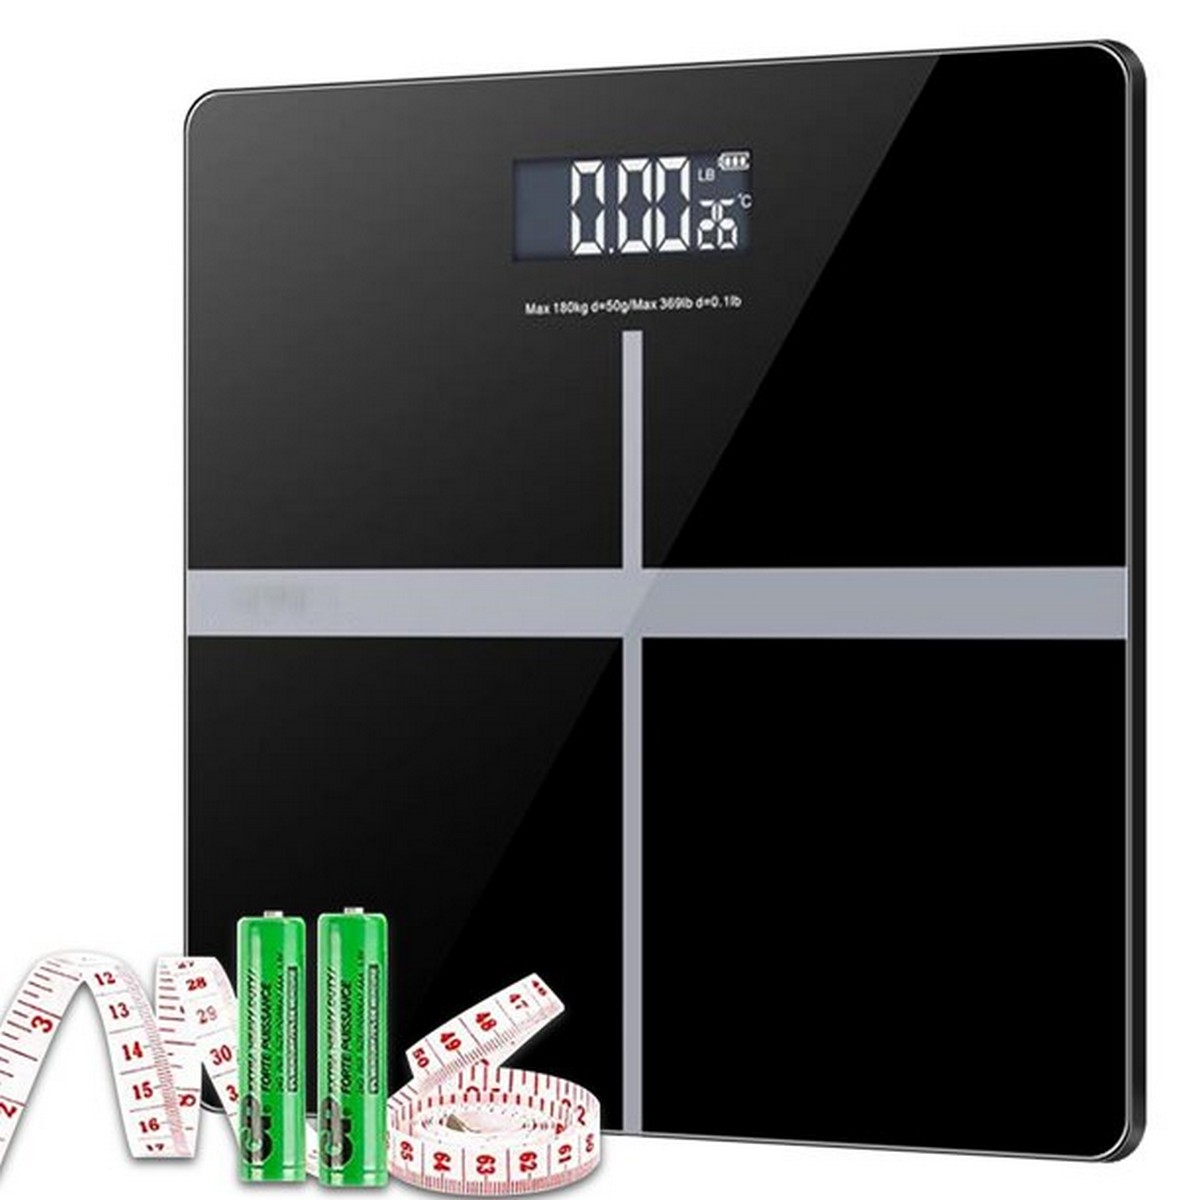 Imported 100% Accurate Tempered Glass Electronic Digital Body Weight Scale Digital Body Weight Machine Digital Personal Body Weighing Scale Digital Personal Body Weighing Machine Digital Bath Scale Digital Bathroom Scale Portable Weight Scale Machine